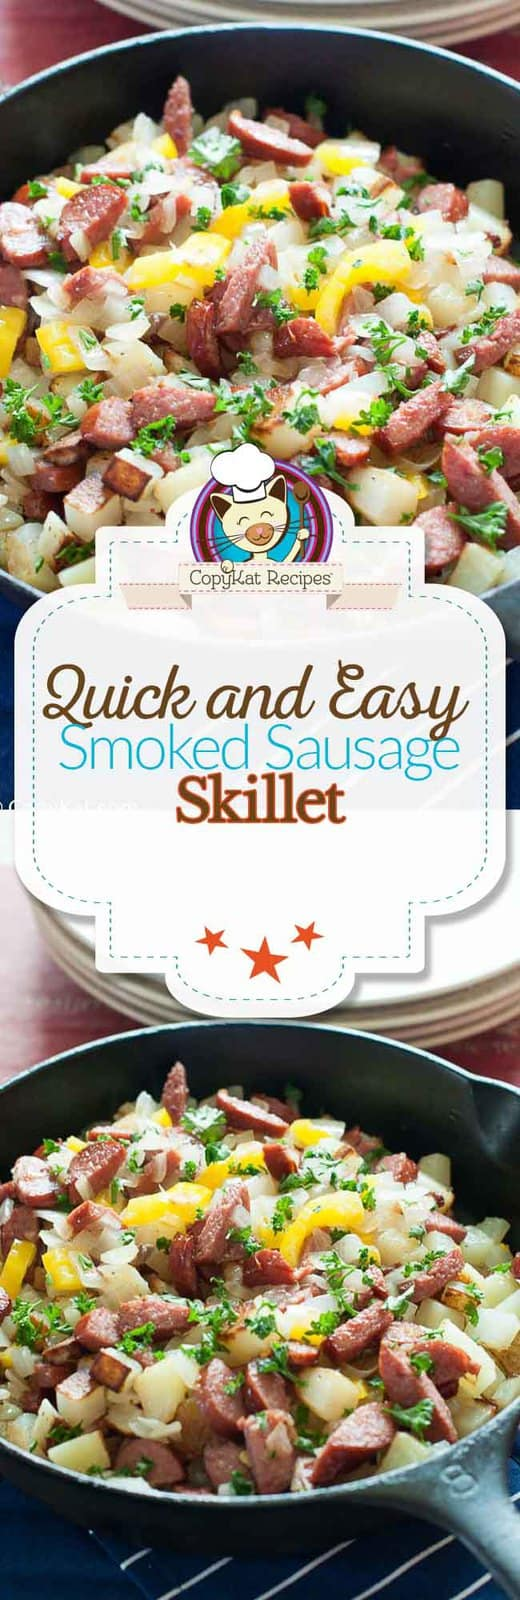 Make a quick and easy skillet dinner with Hillshire Farm®  Smoked Sausage.